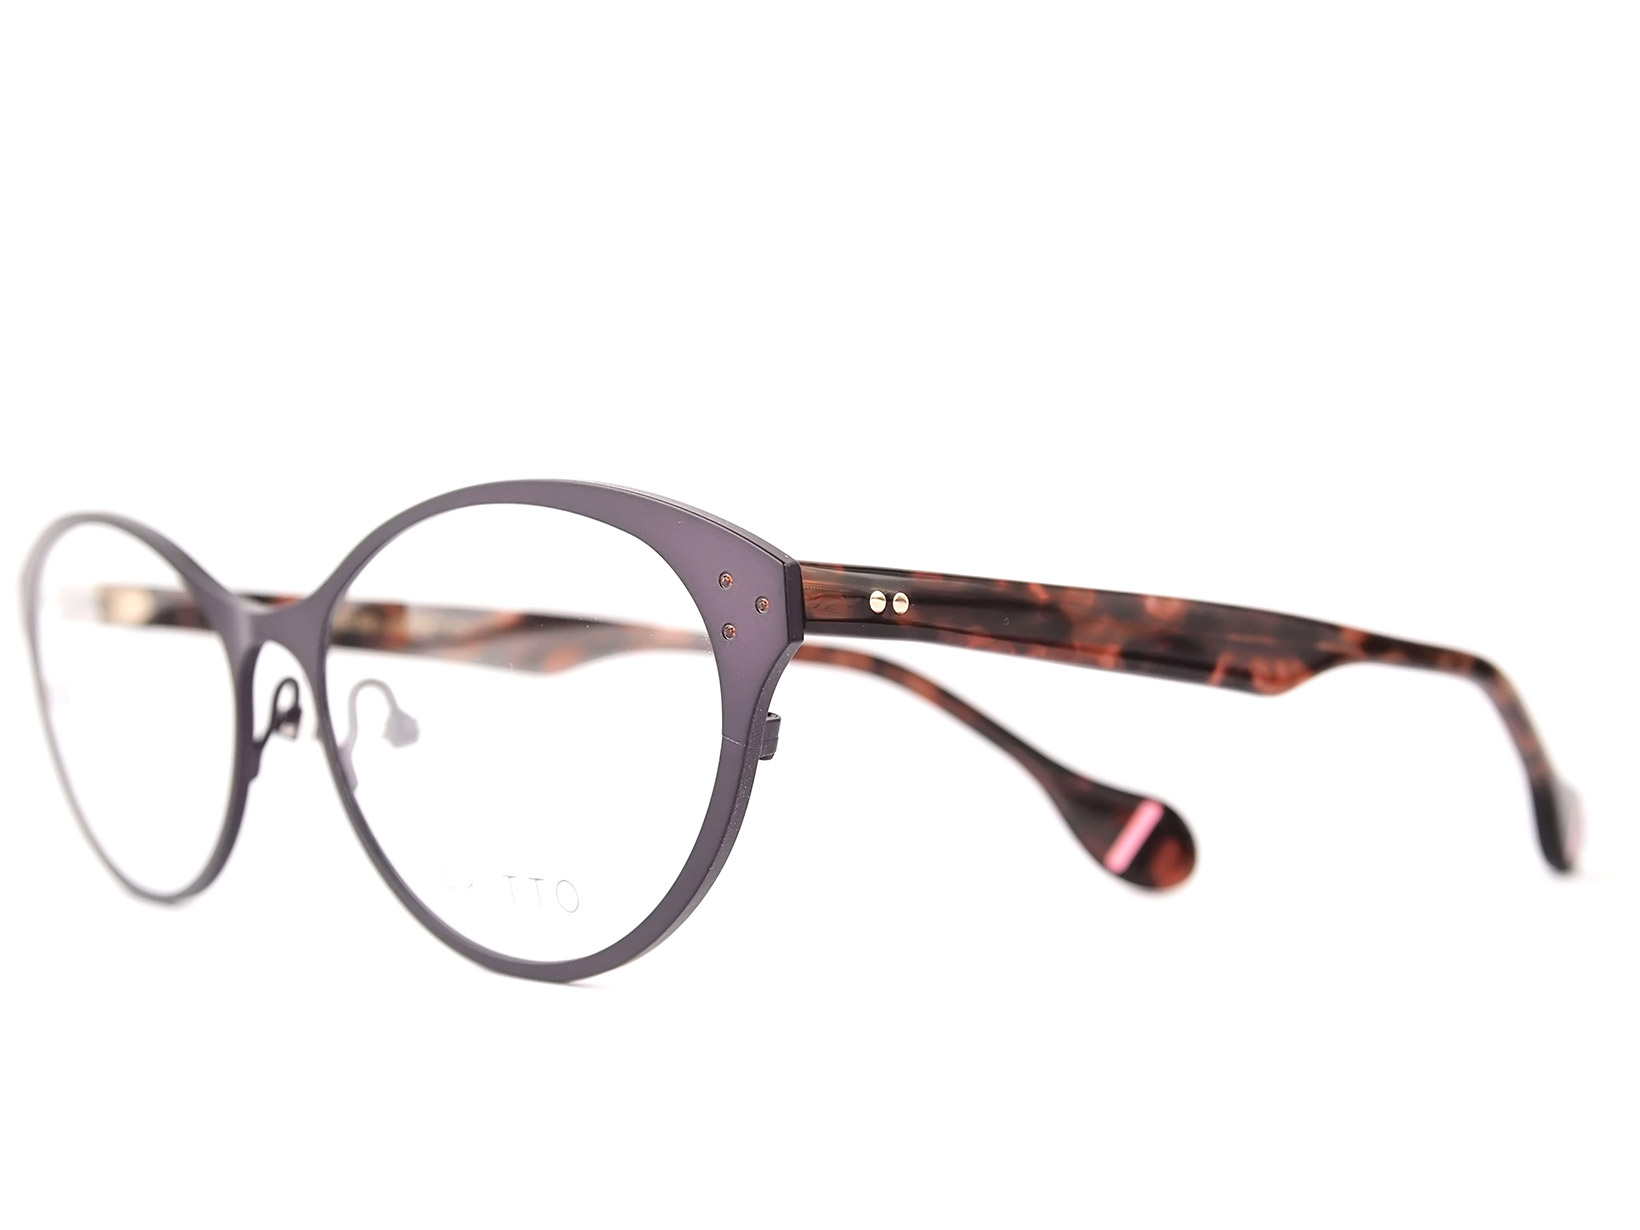 AKITTO 2016-2nd mai color|PU size:53□16 material:titanium+acetate price:42,000-(+tax)